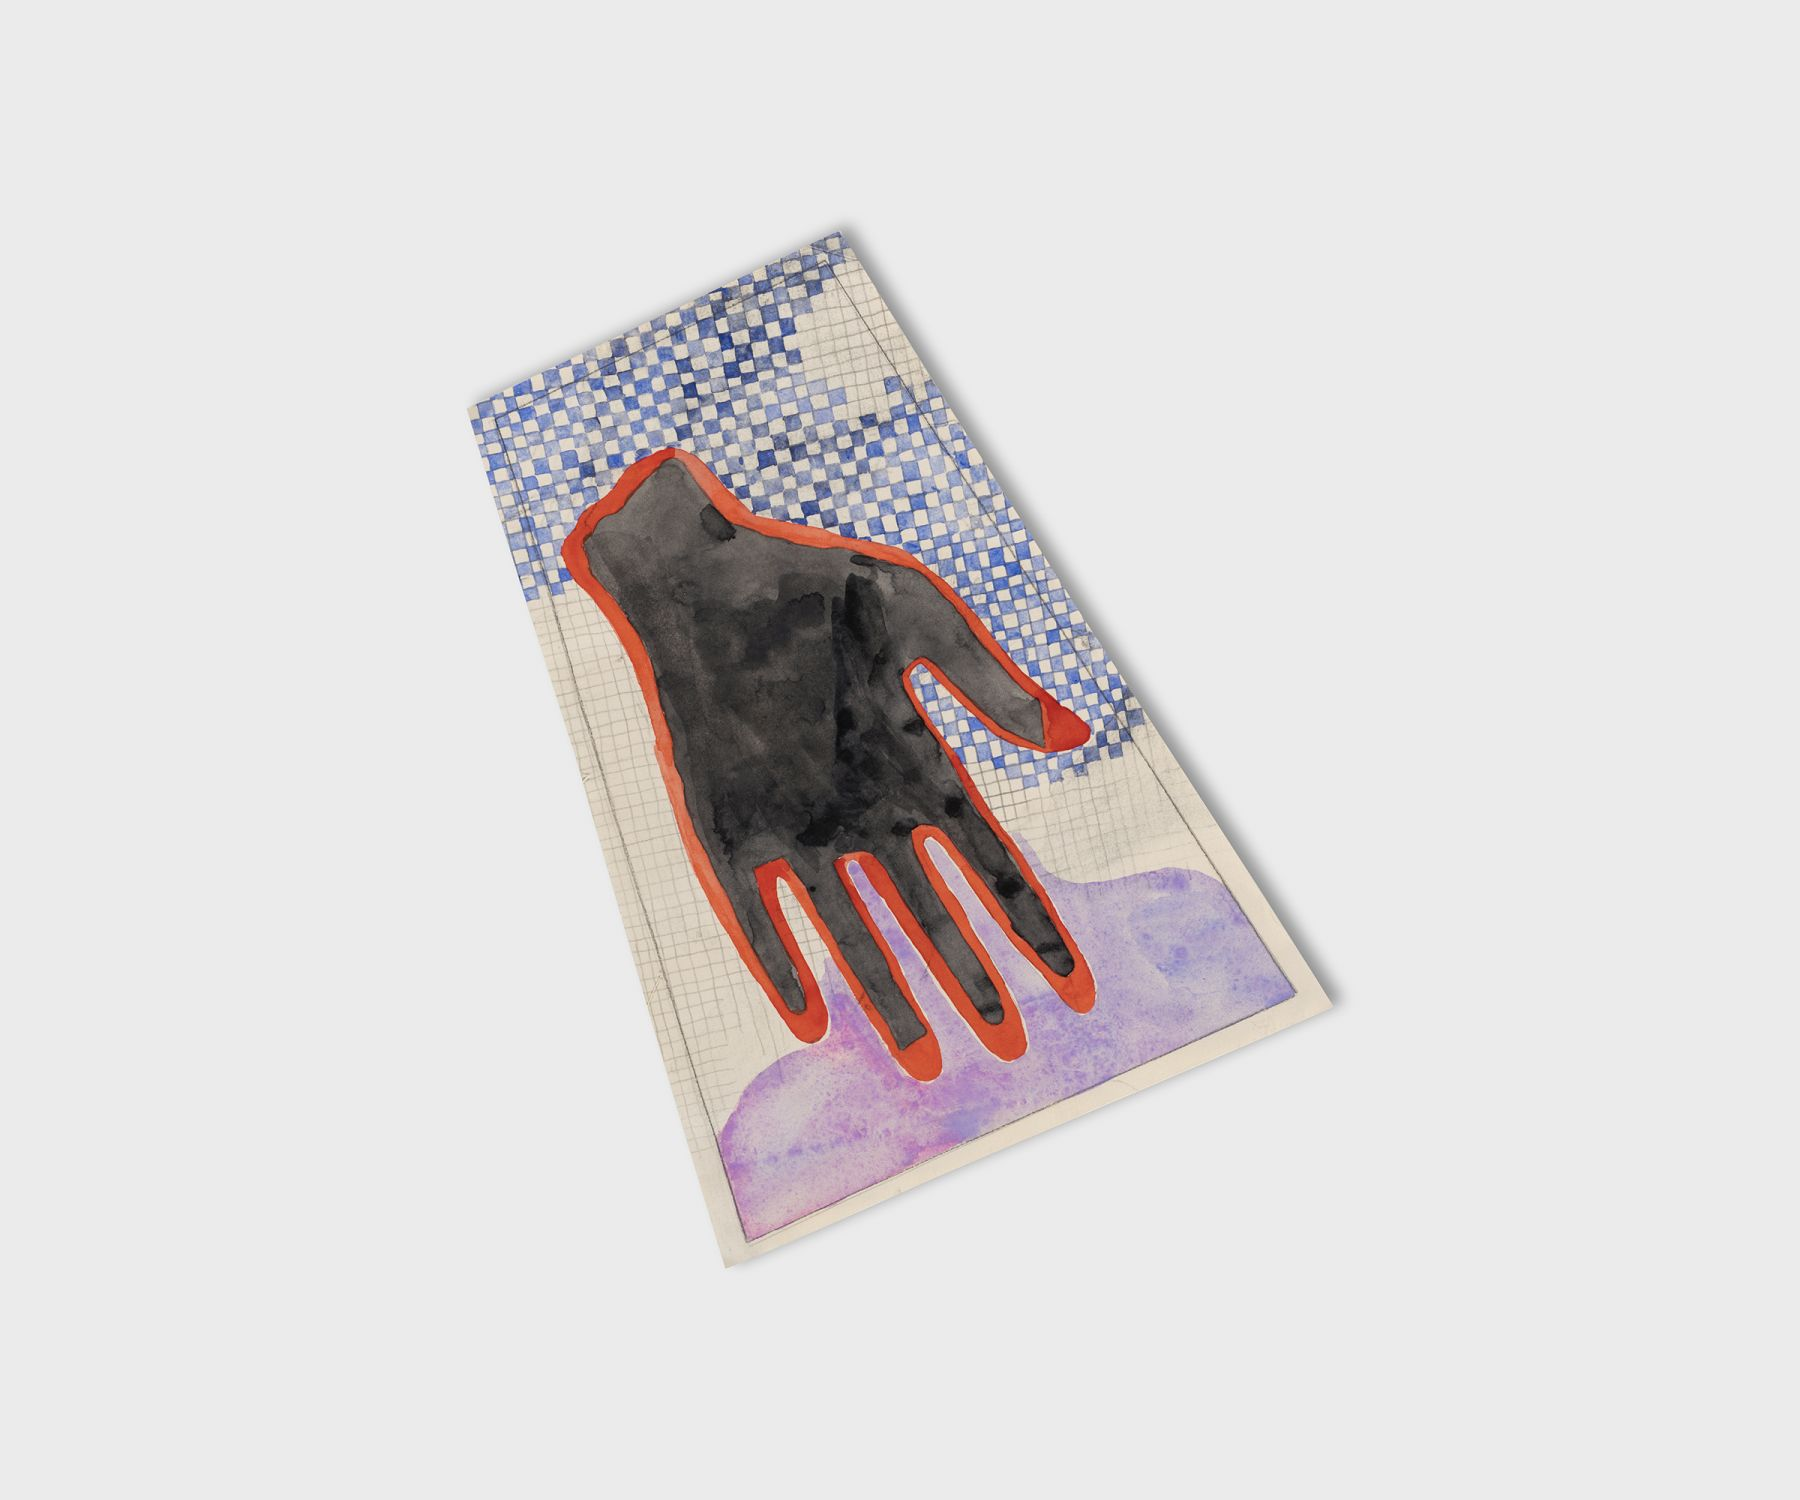 PaoloColombo Mollino's Hand, 2020 Watercolor on Arches paper